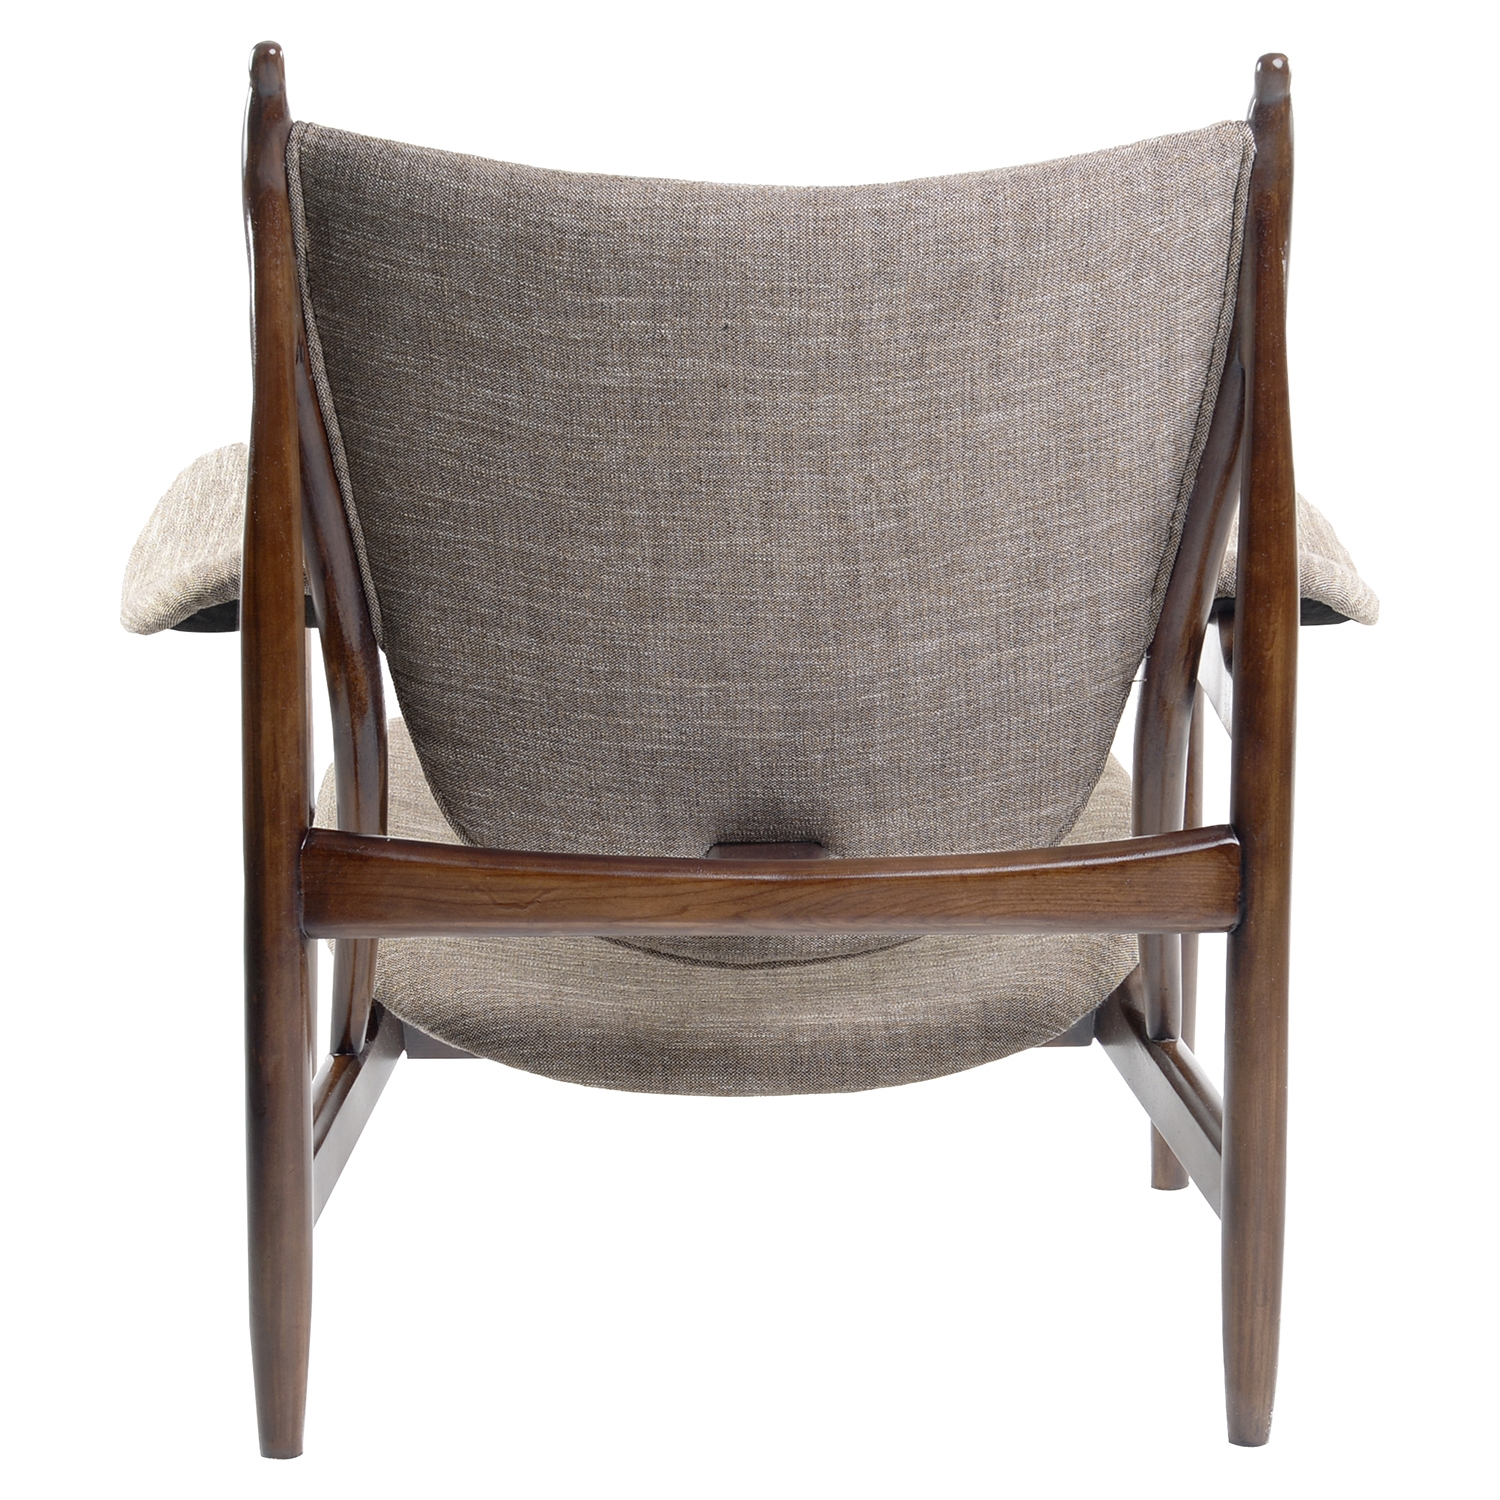 Arne Button Tufted Armchair - Light Taupe - NYEK-445550